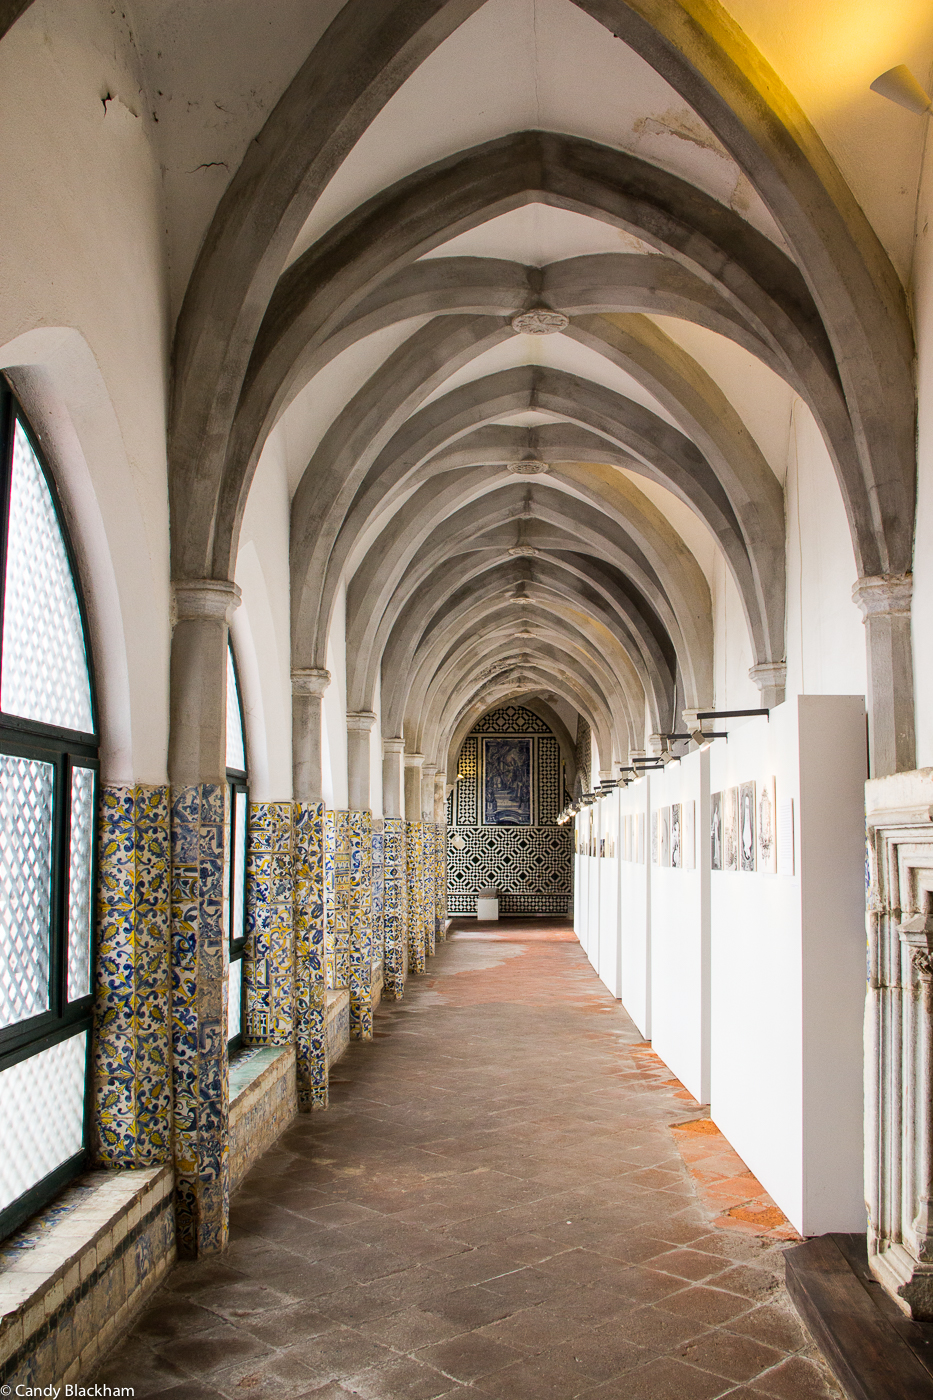 Entrance Hall Court in the Cloisters